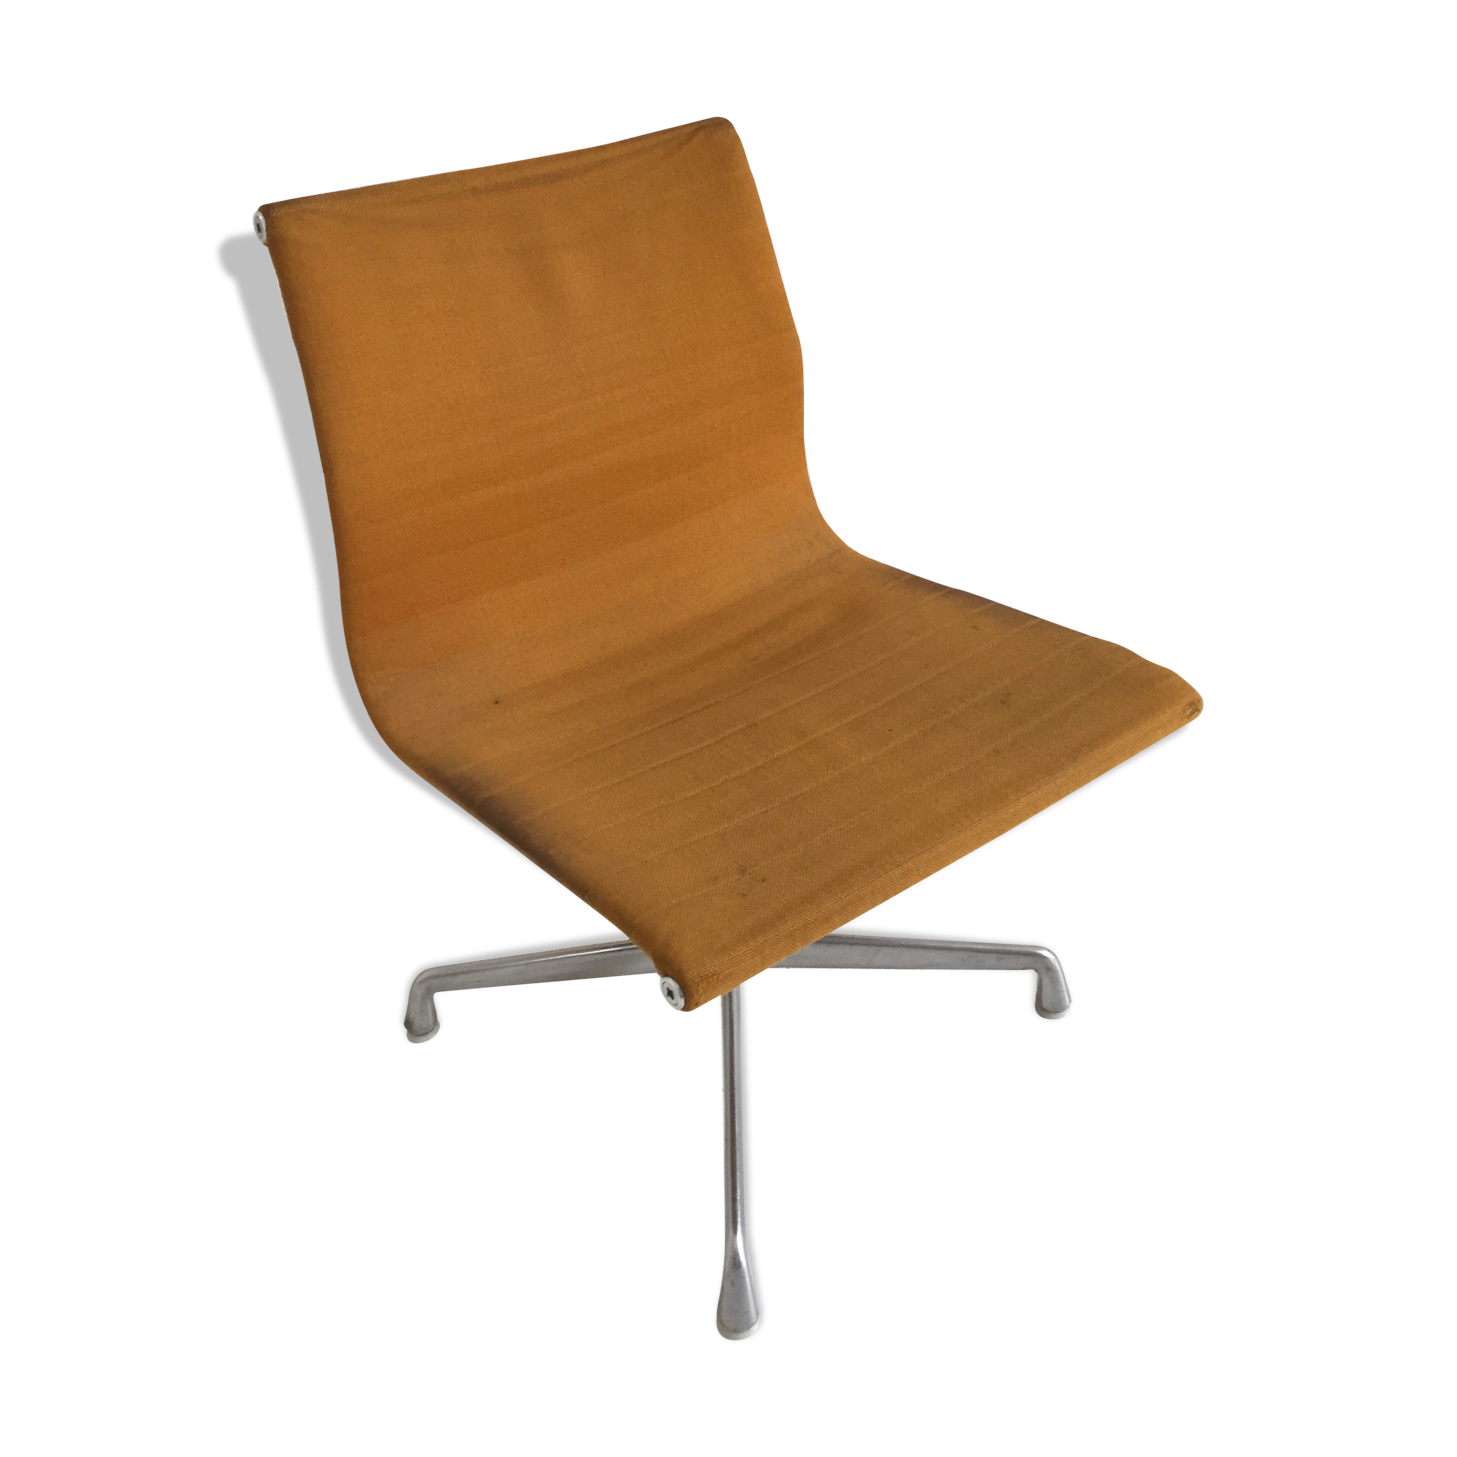 charles and ray eames furniture. Herman Miller Model EA 105 By Charles \u0026 Ray Eames Office Chair And Furniture